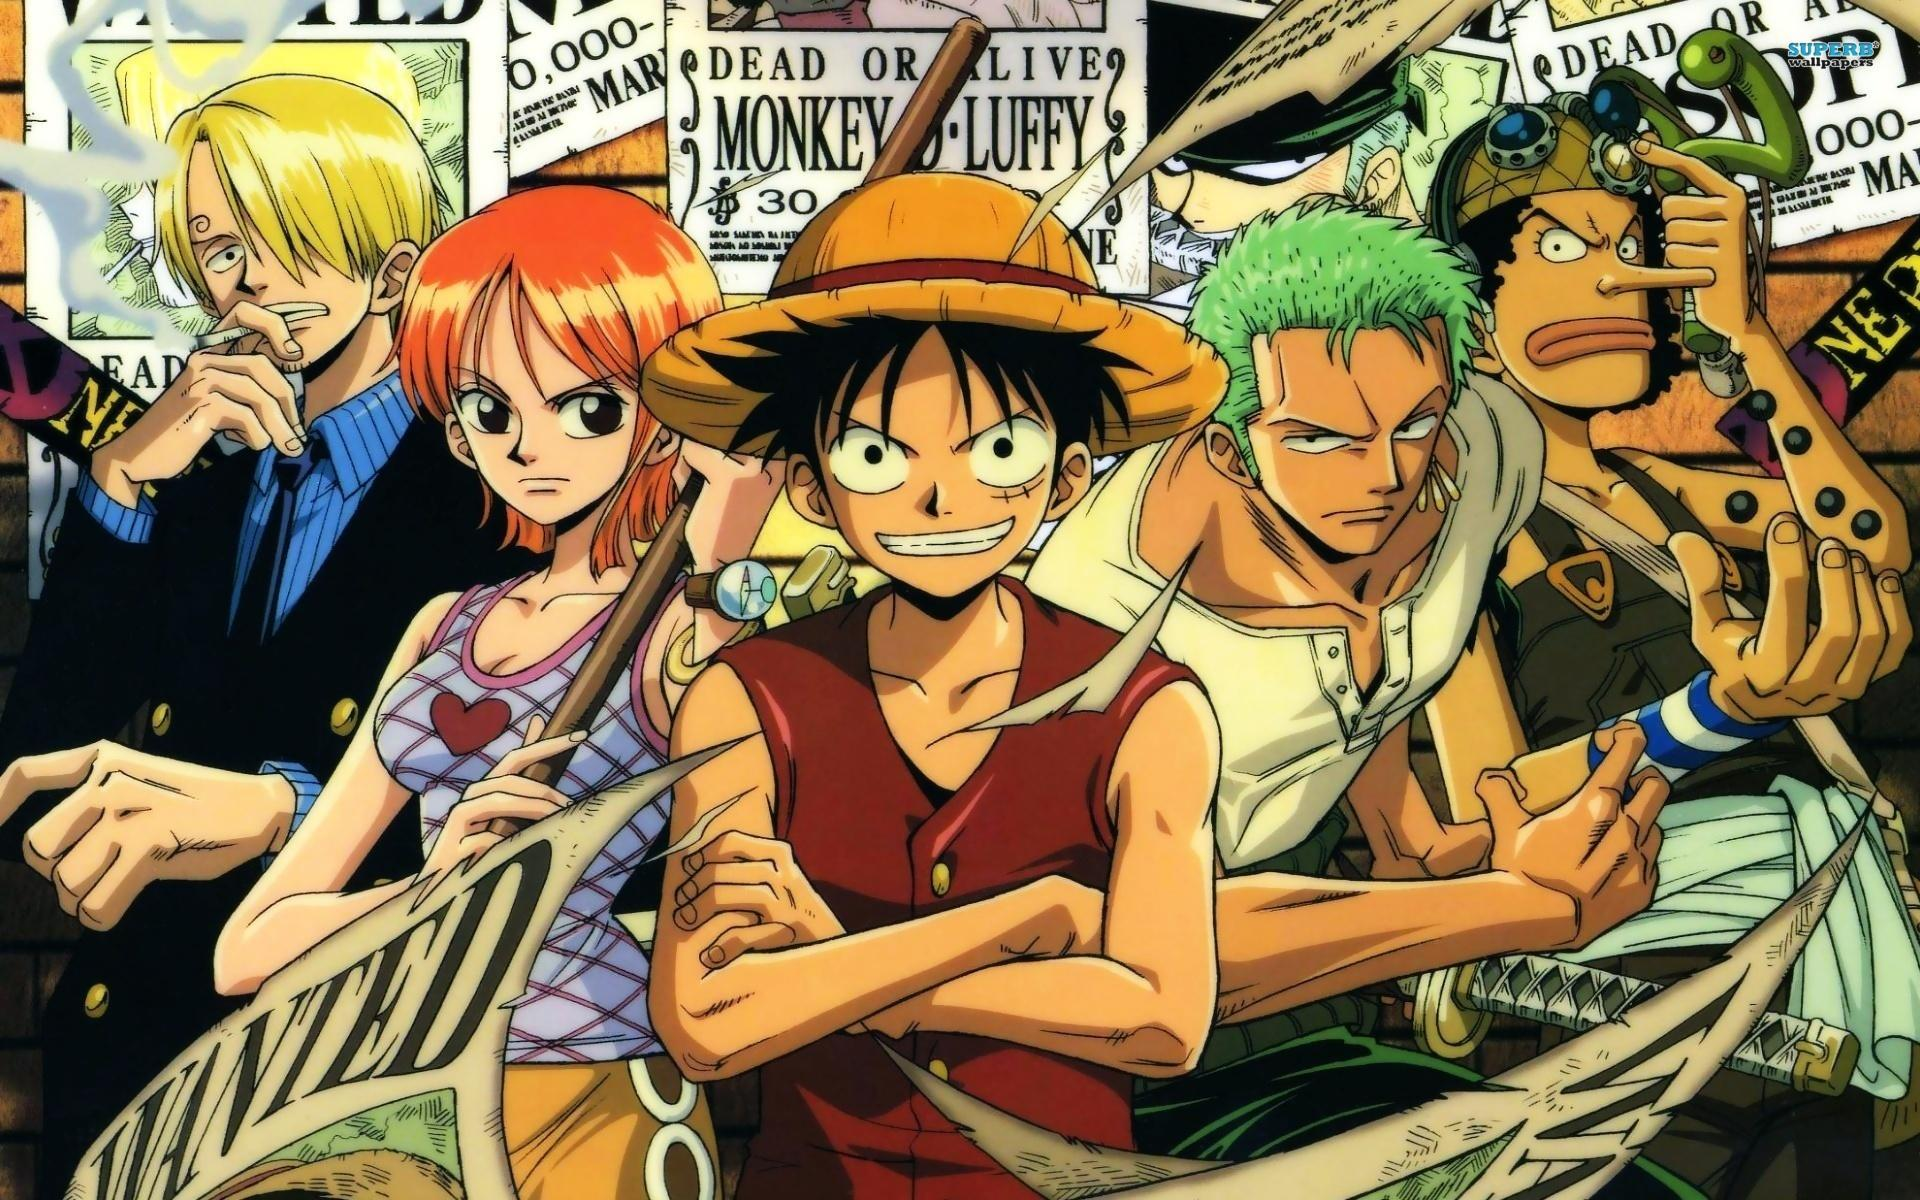 What straw hat pirate character are you (one piece)???